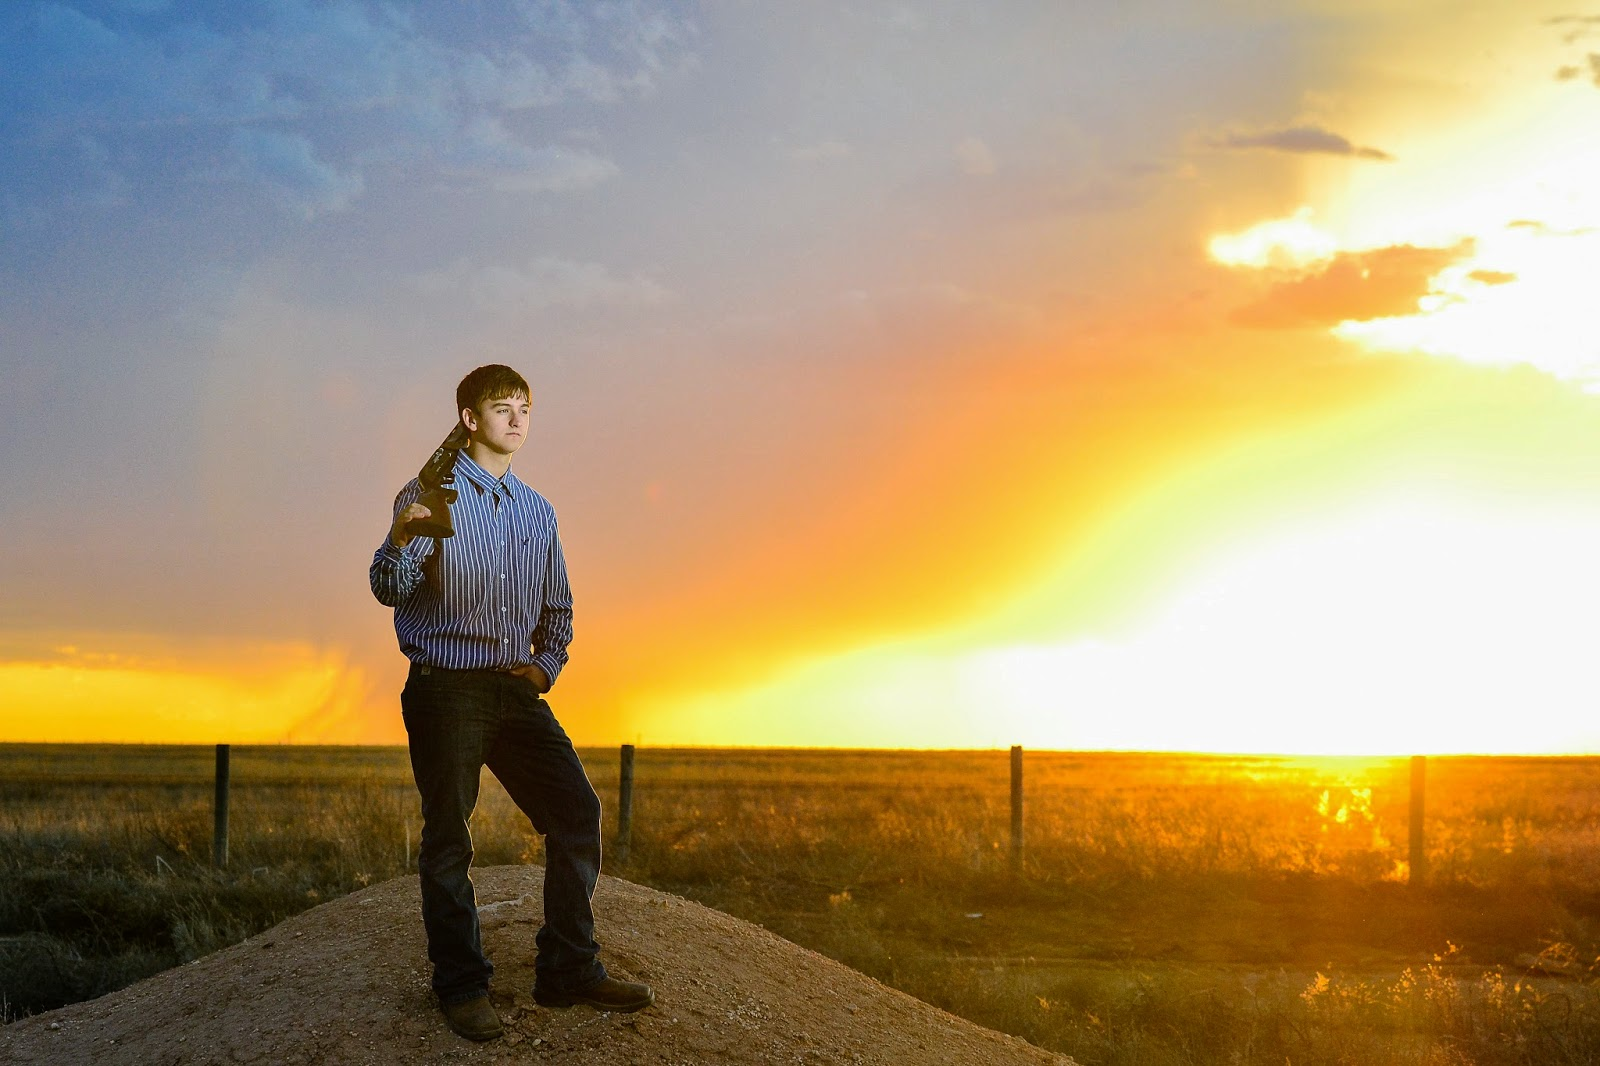 Lubbock TX Senior Photographer, Lubbock Senior Portraits, Lubbock Senior Photography, Lubbock sunset photo, sunset Lubbock TX senior photography